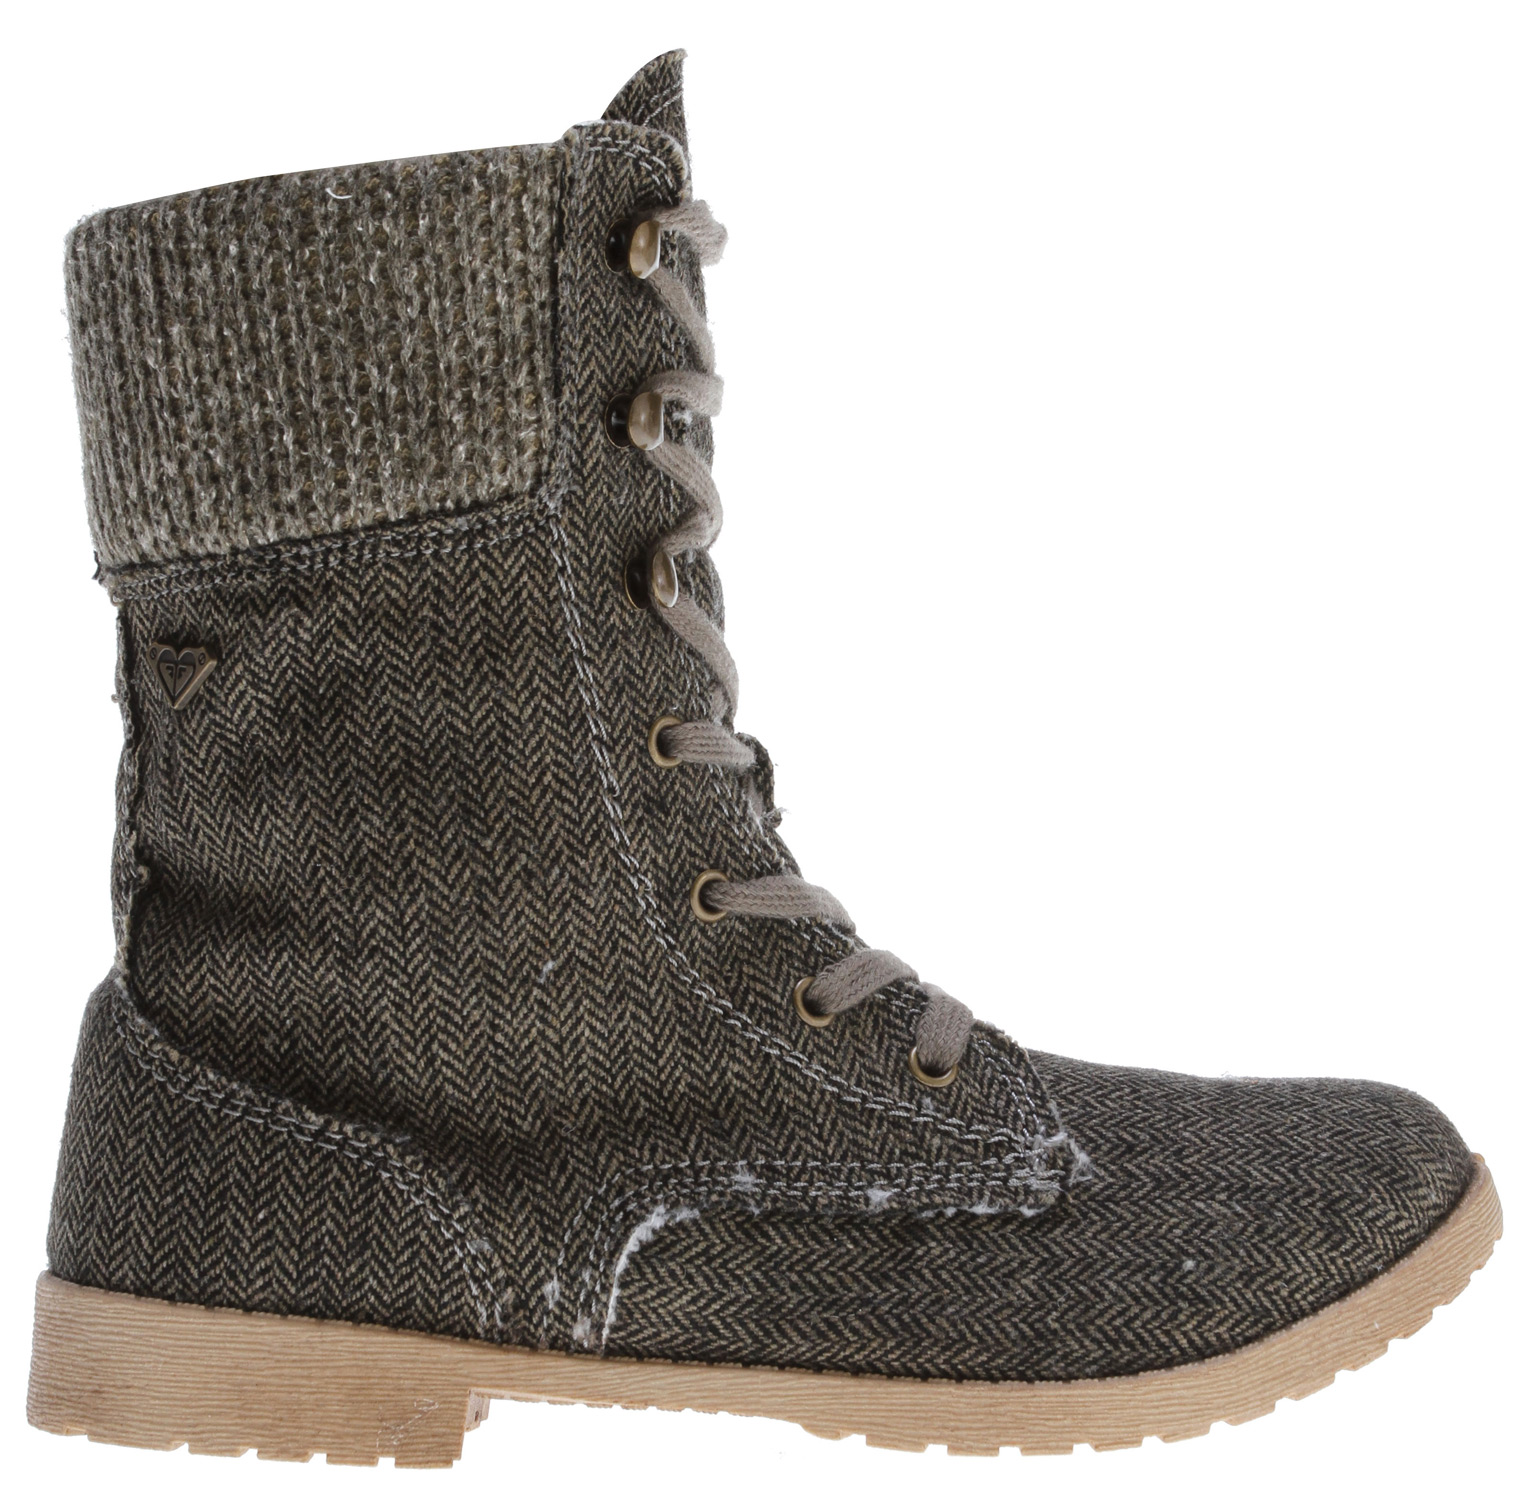 Surf Key Features of the Roxy Denver Boots: wool upper with sweater knit collar interior side zipper soft cotton laces with metal hooks and eyelets metal logo pin cozy faux fur upper and footbed lining padded insole flexible TPR injected outsole boxed - $47.95